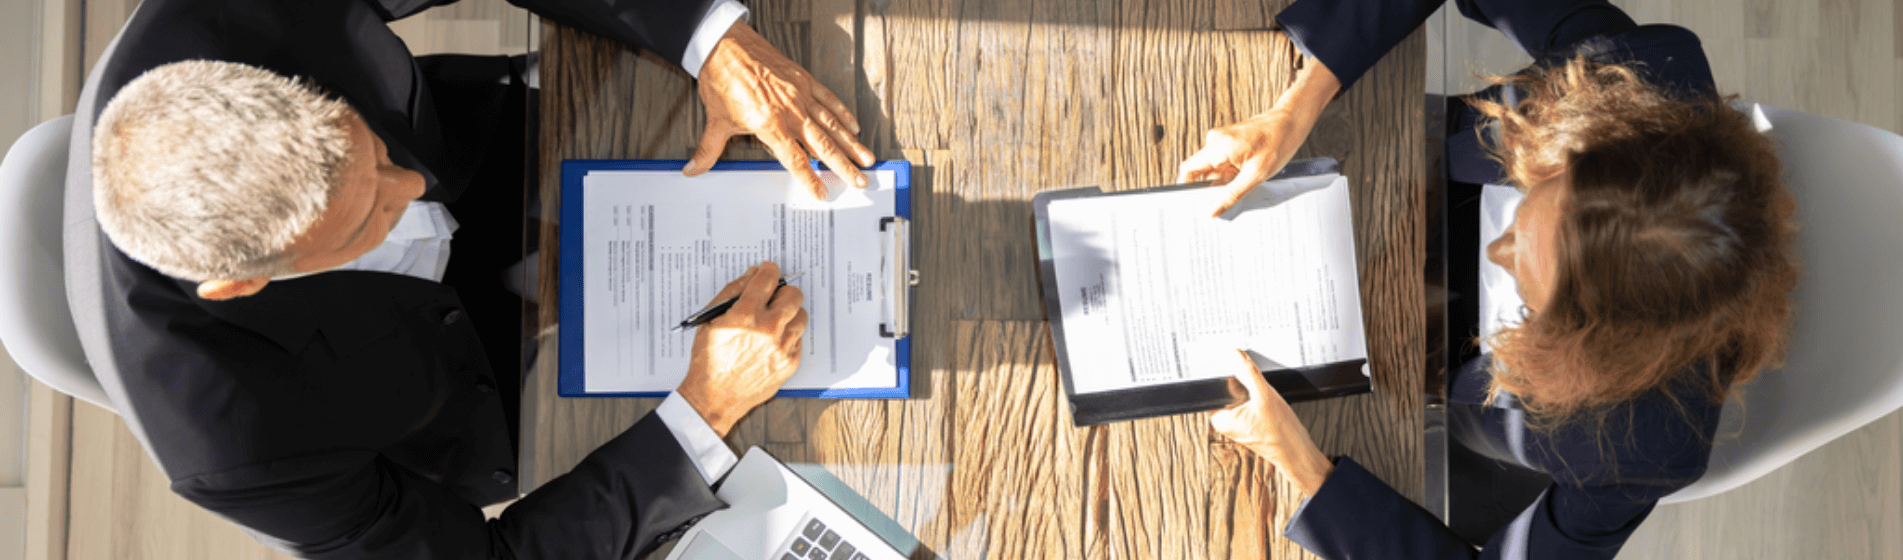 How to Create Staffing Companies to Save Tax